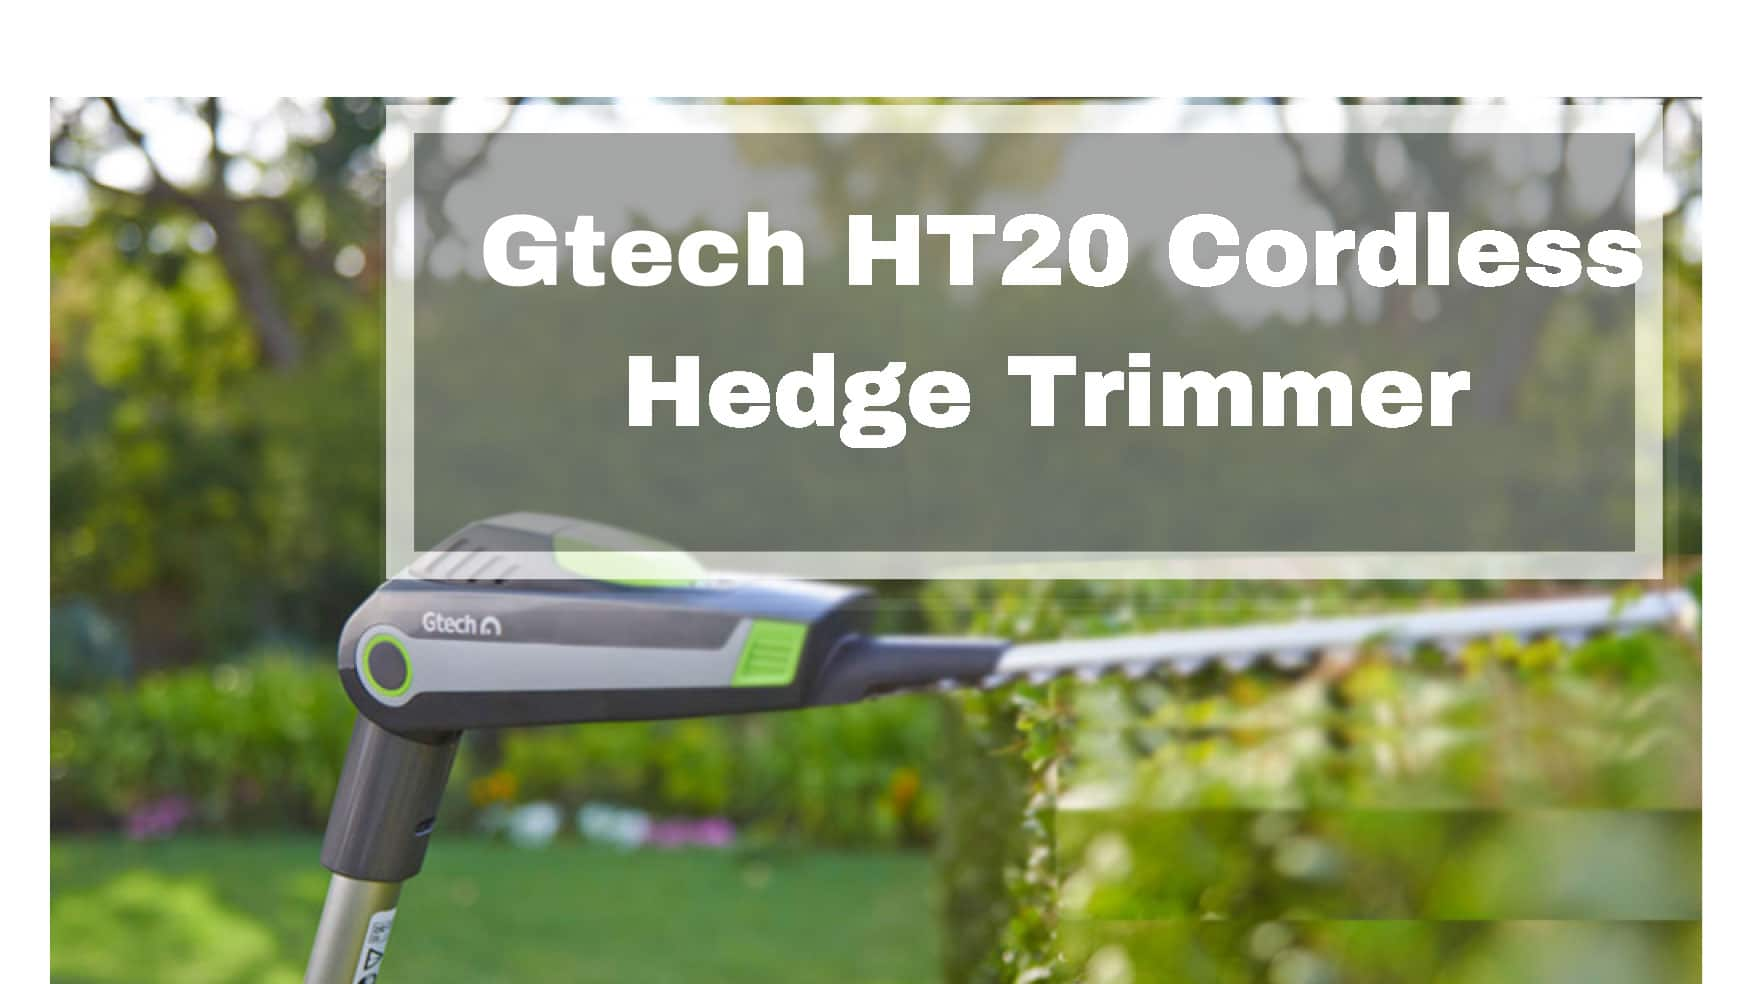 Gtech Hedge Trimmer Review Ht20 Cordless Model